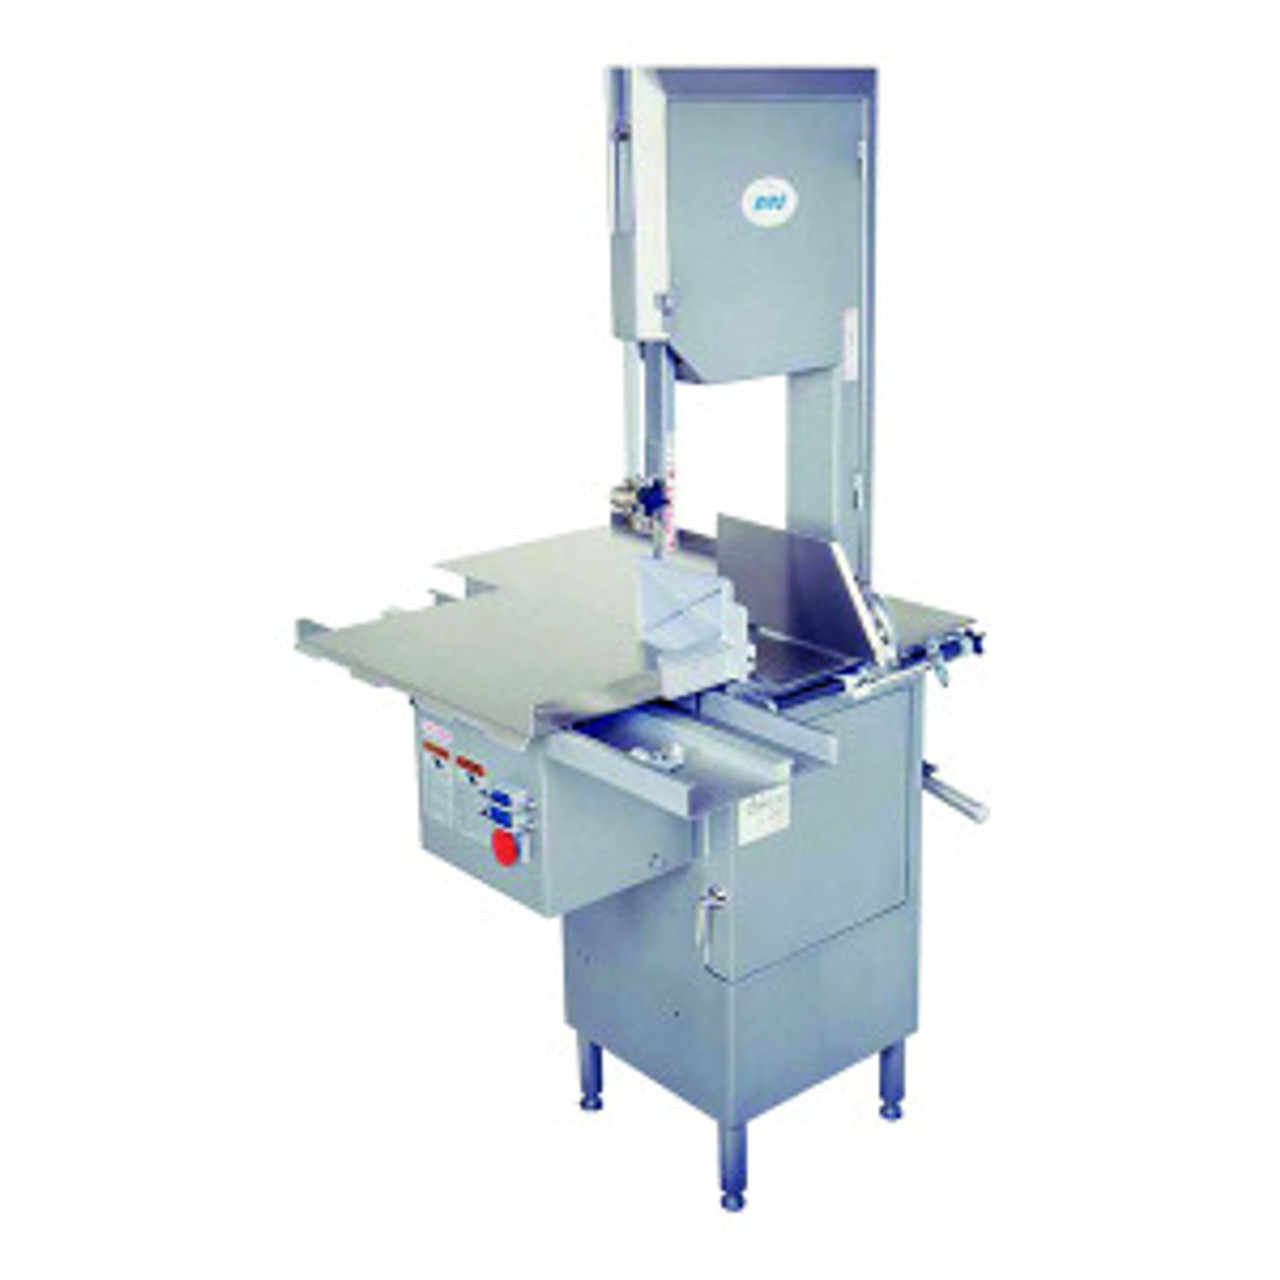 Biro 1433 Stainless Steel Band Saw